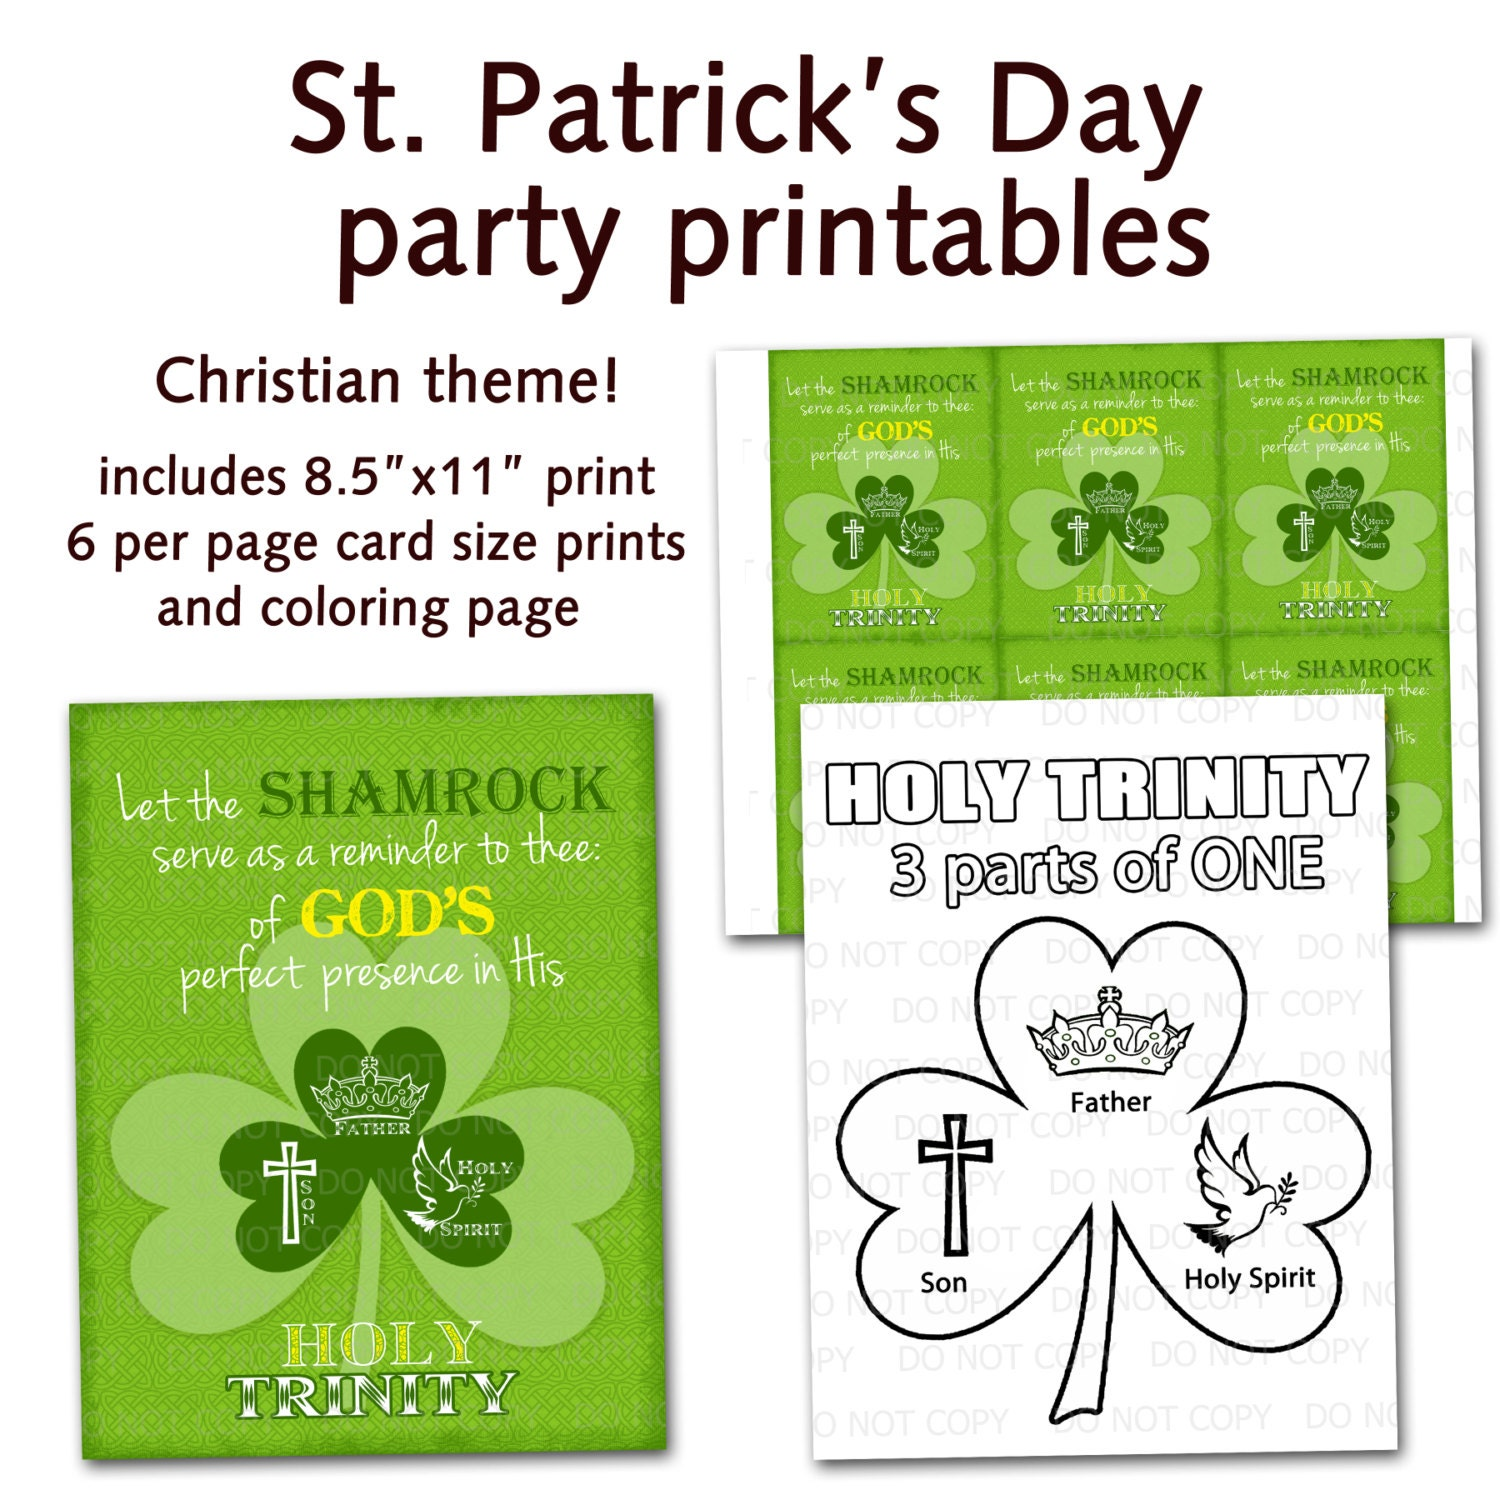 Saint patrick christian singles | Flirting Dating With Physically ...